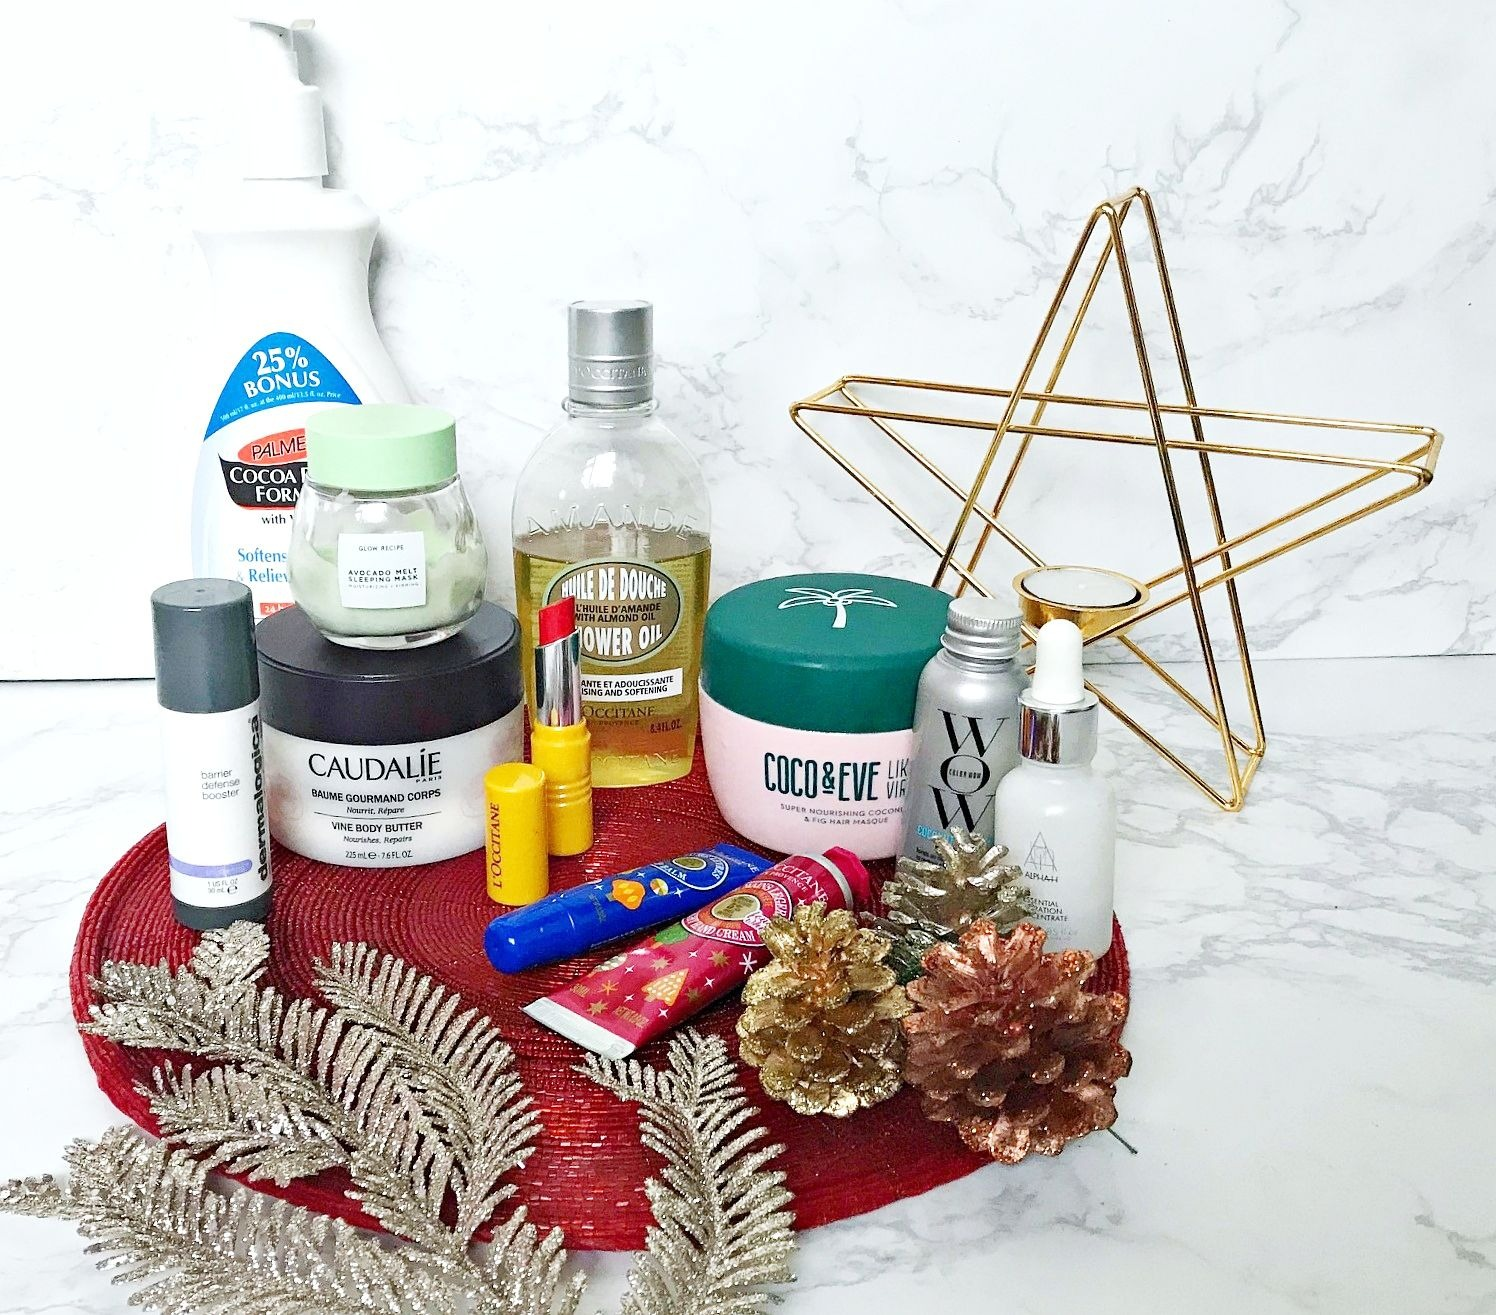 Nourishing products for winter